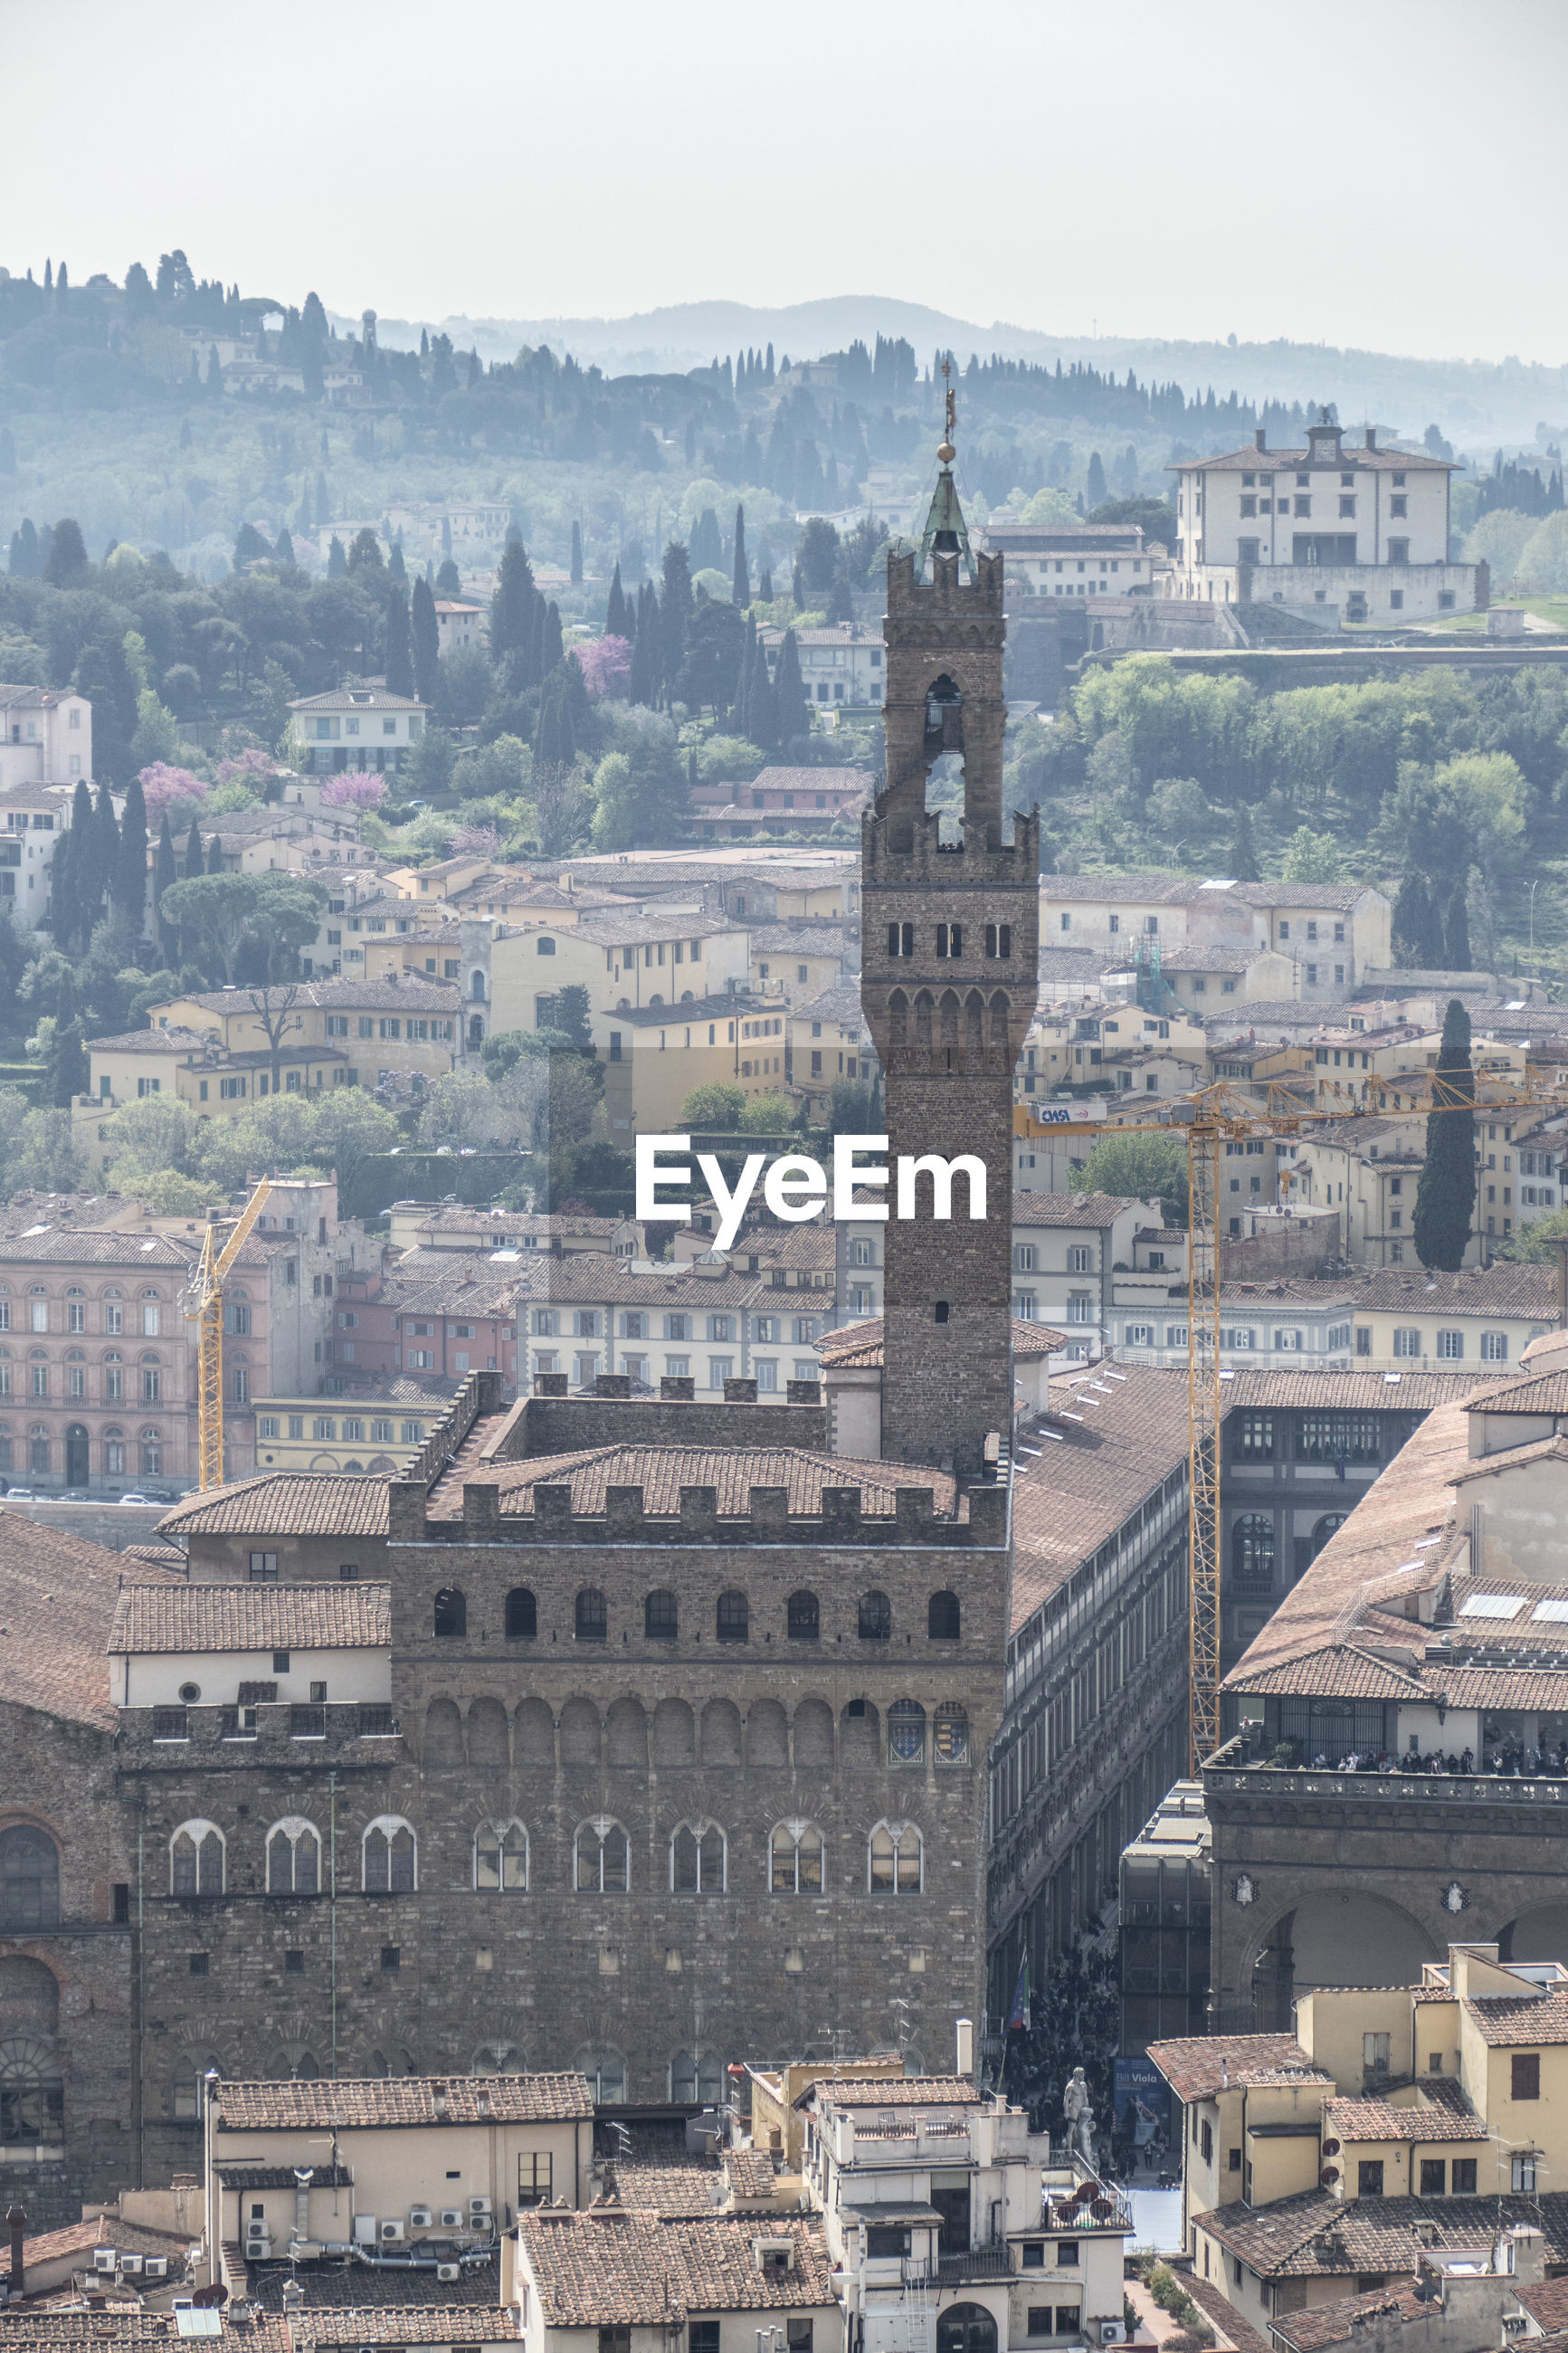 Palazzo vecchio of florence seen from above